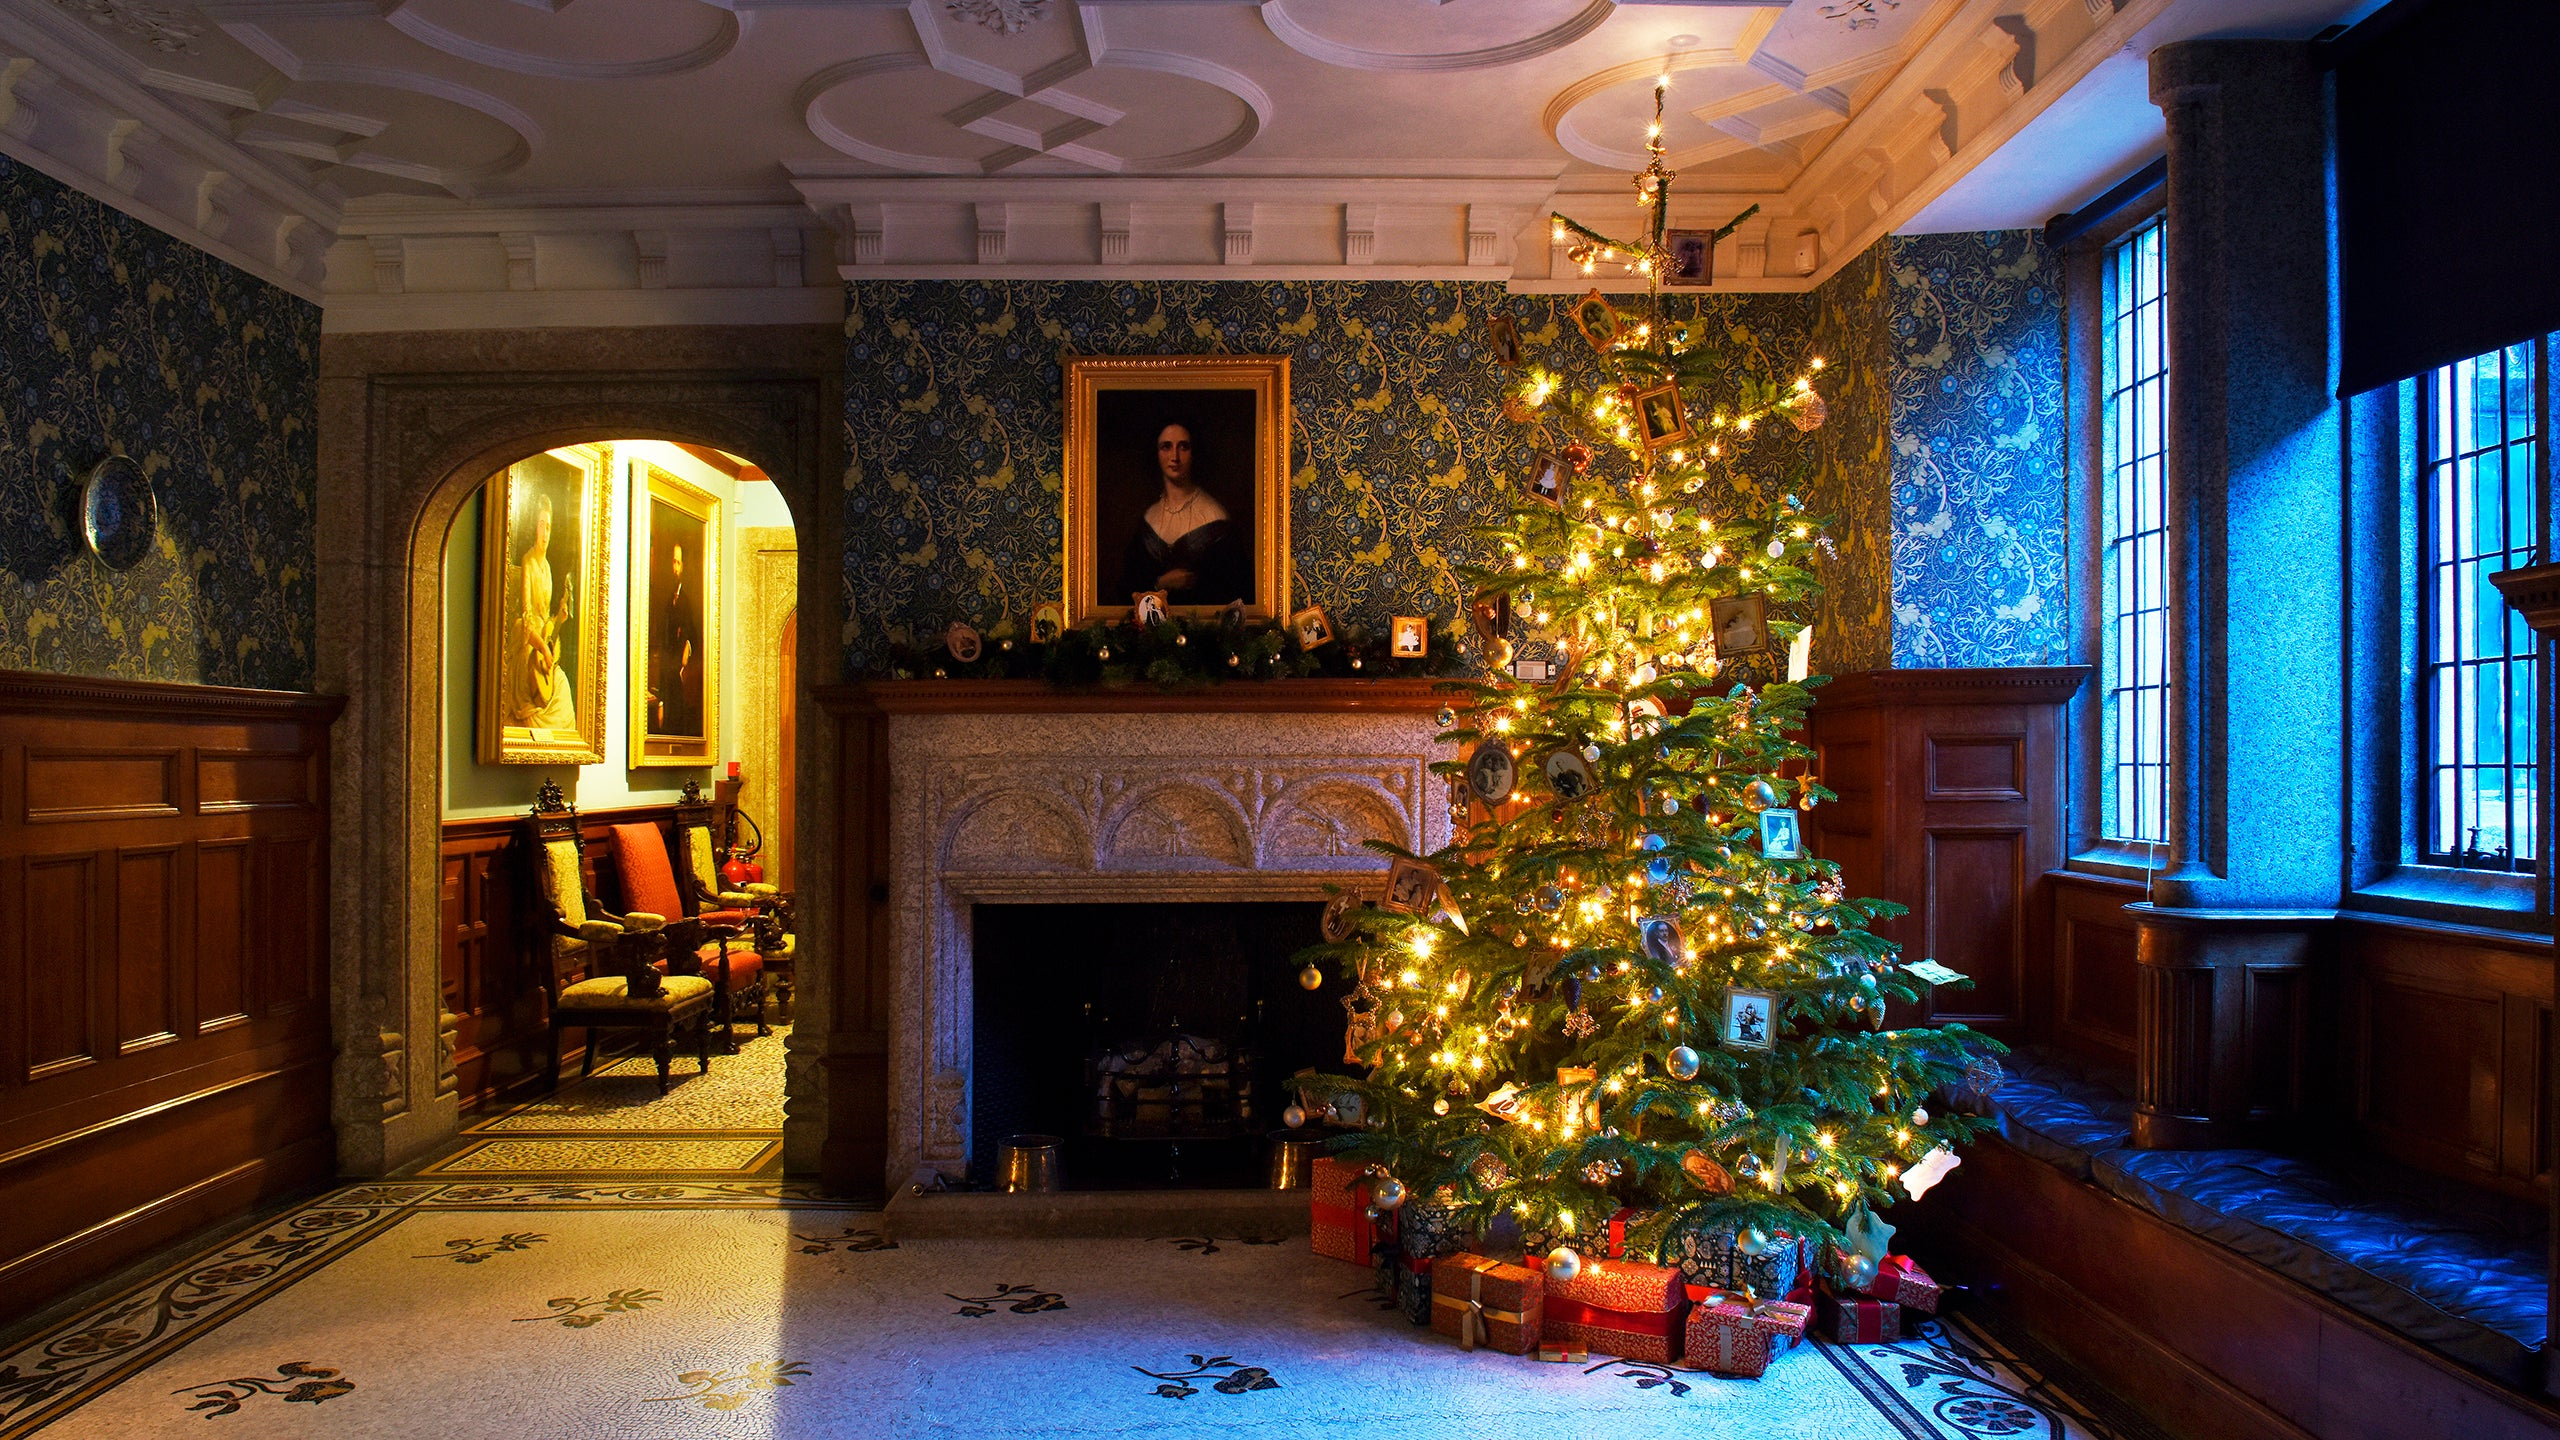 The house decorated for Christmas at Lanhydrock, Cornwall